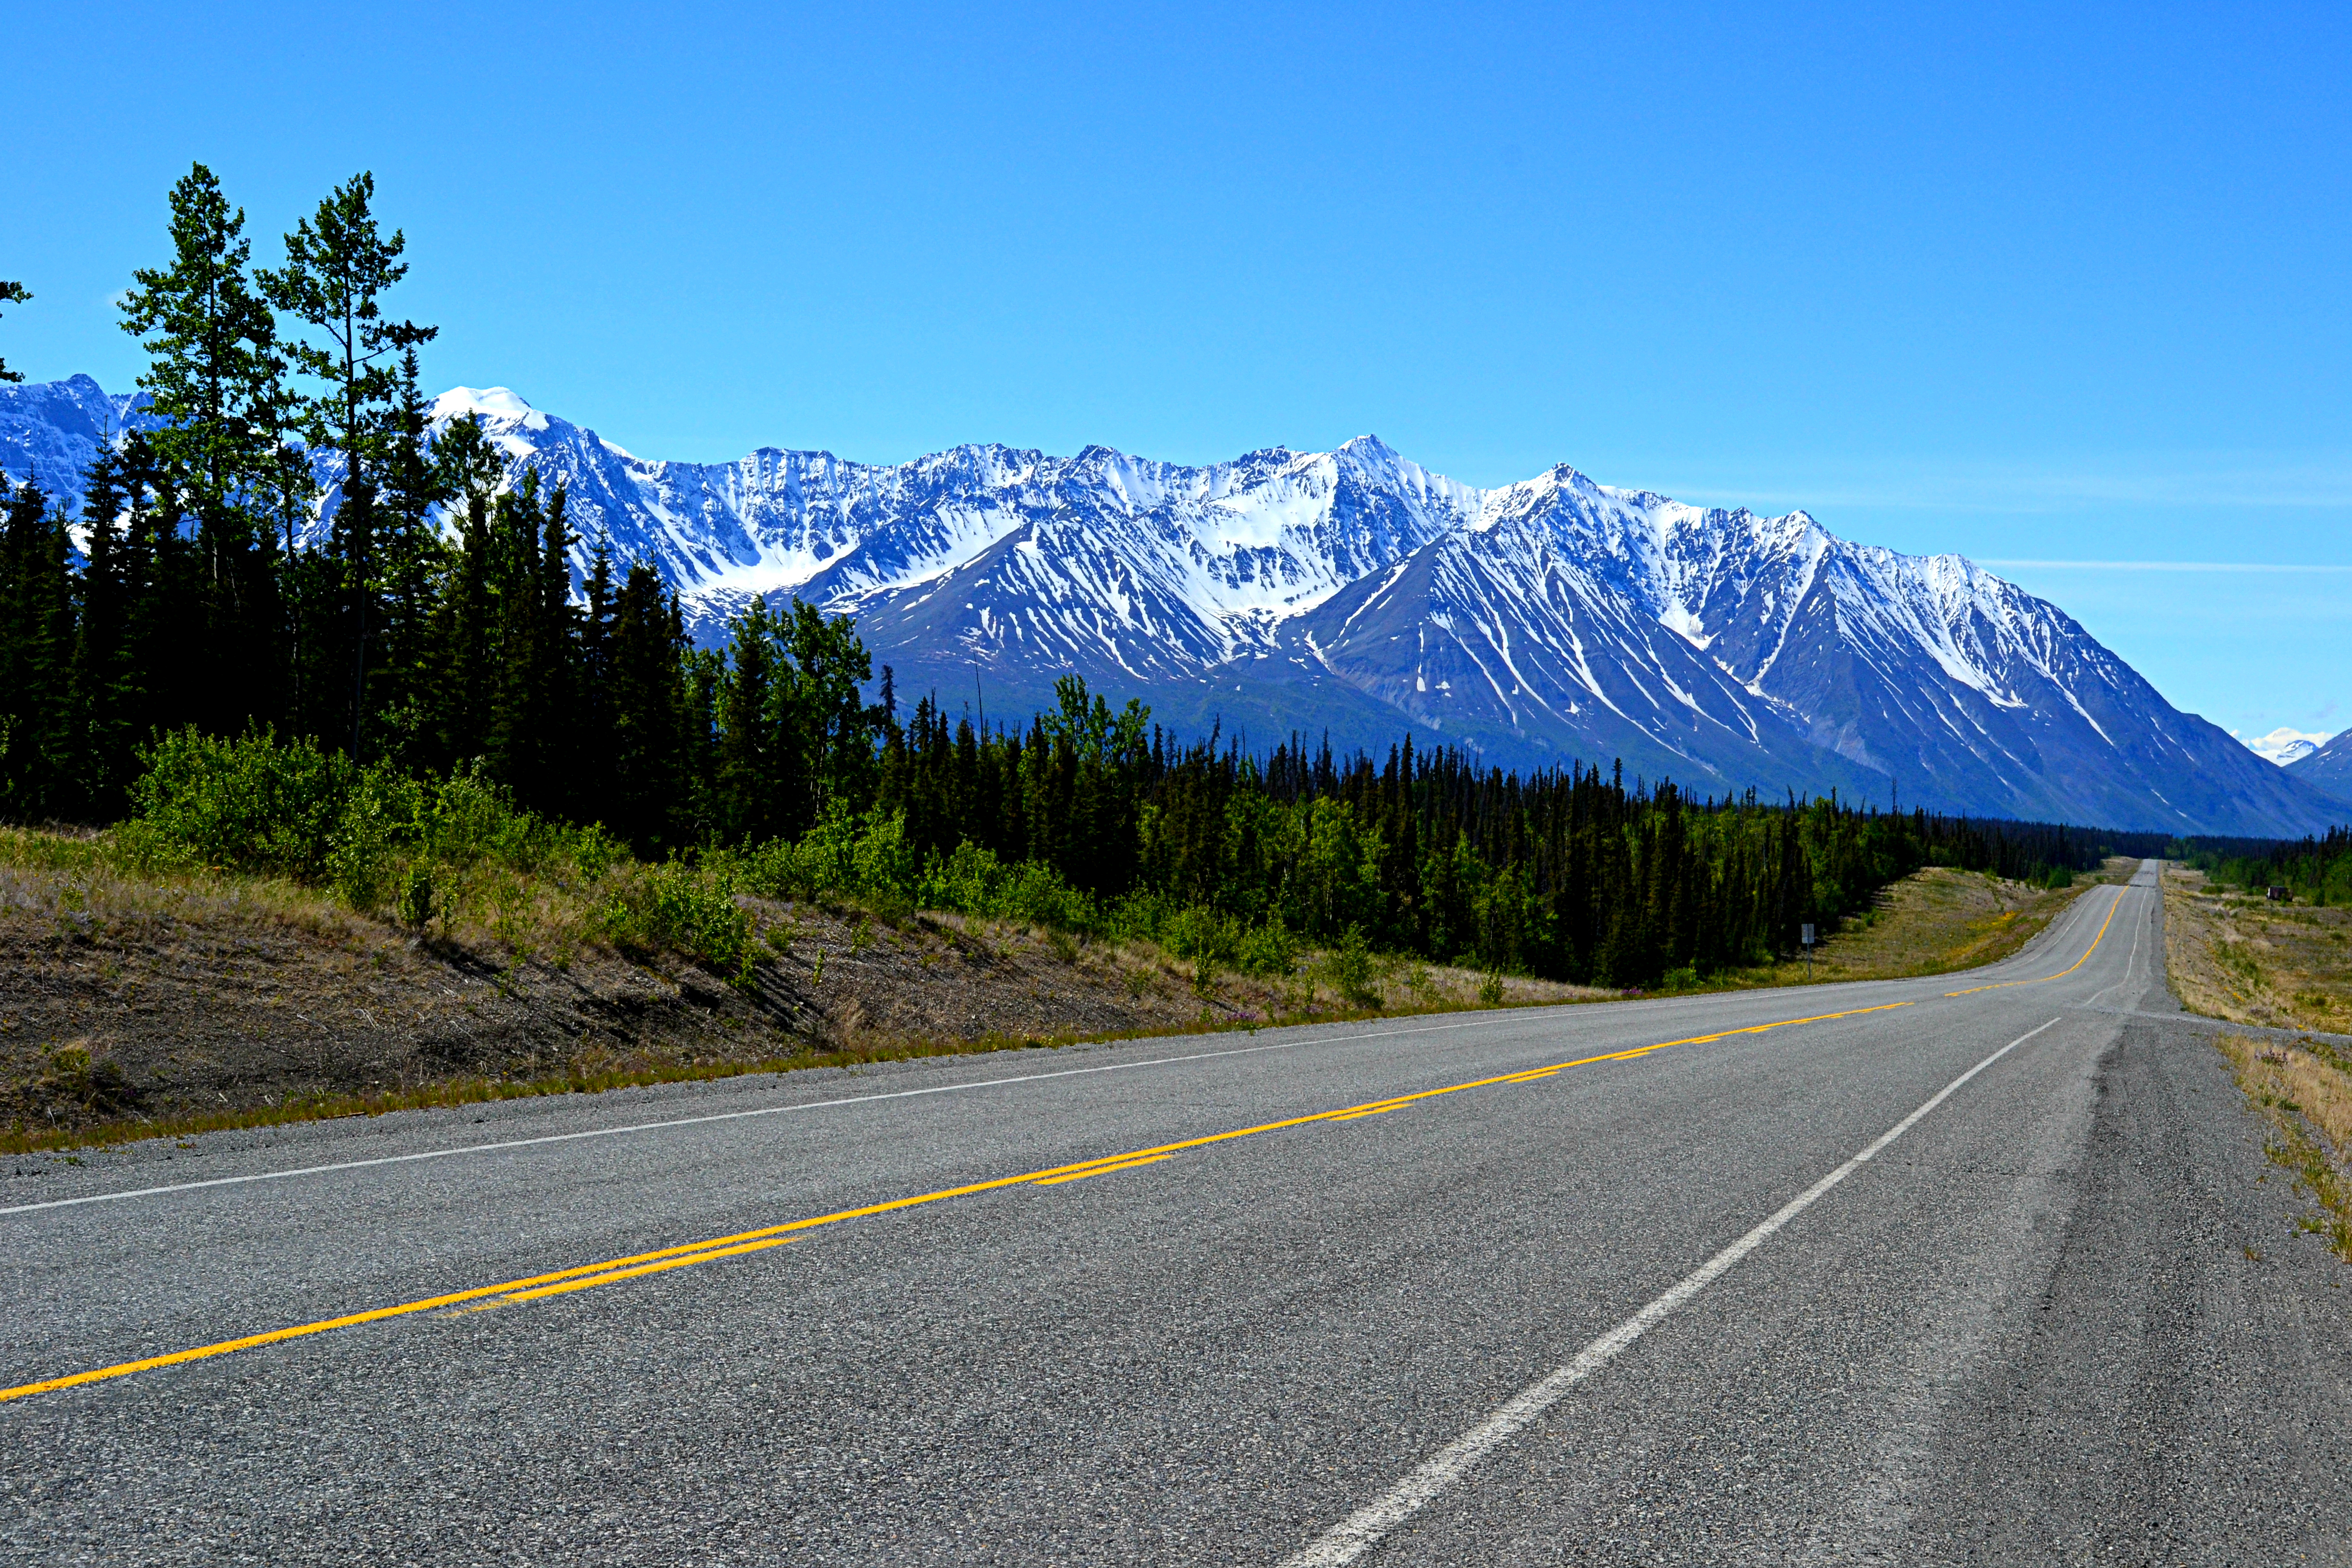 The Alaska Highway | Where the Robert Meets the Road